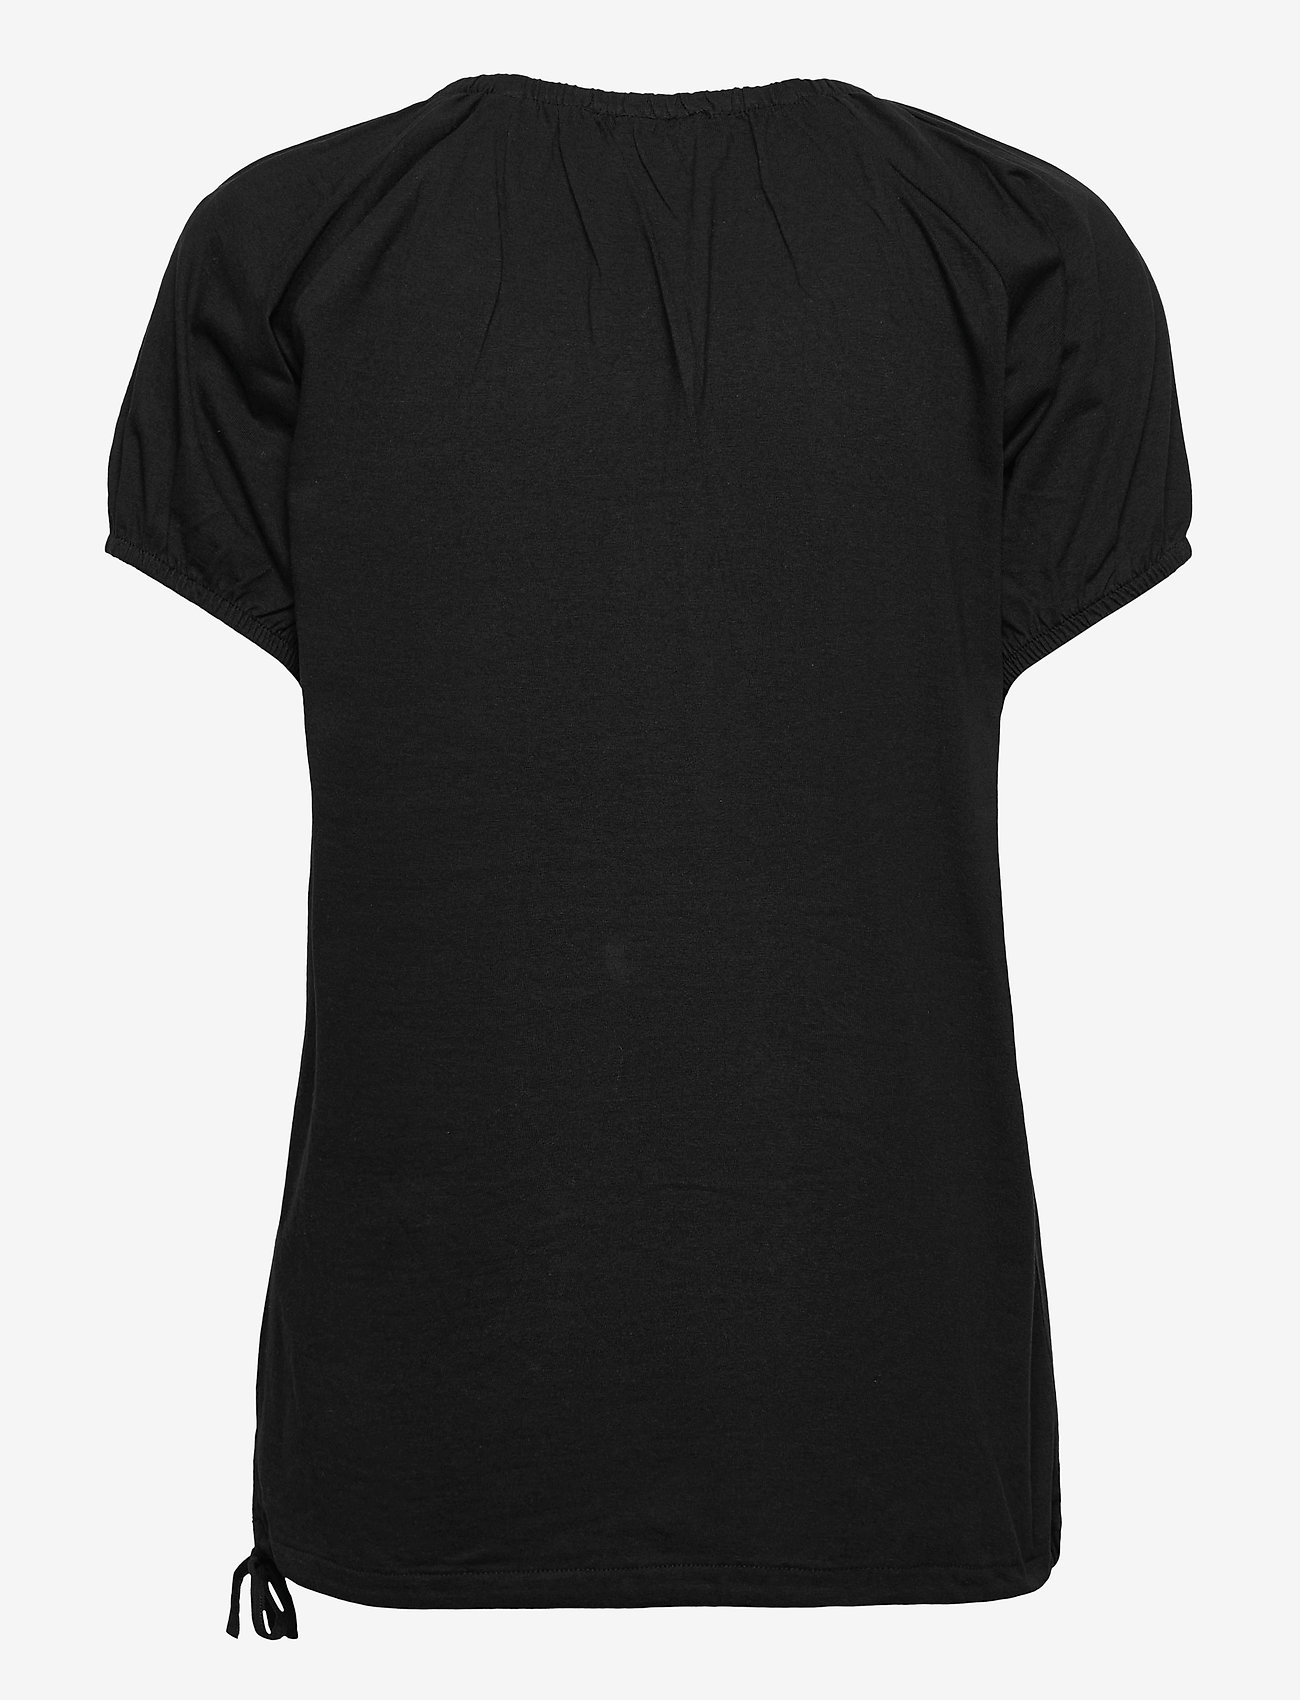 FREE/QUENT - BETINA-SS-SOLID - t-shirts - black - 1